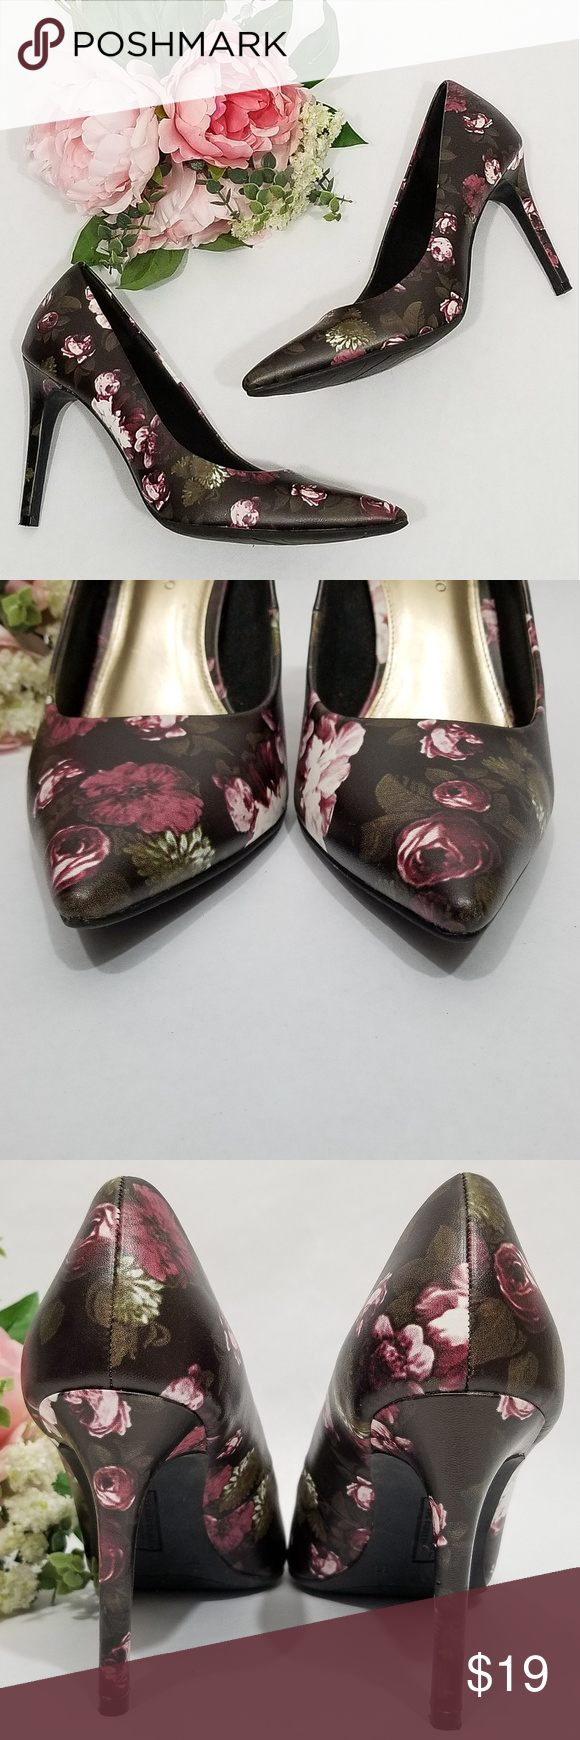 0f4a9192216 Christian Siriano Floral Pointed Toe Pumps Christian Siriano for ...